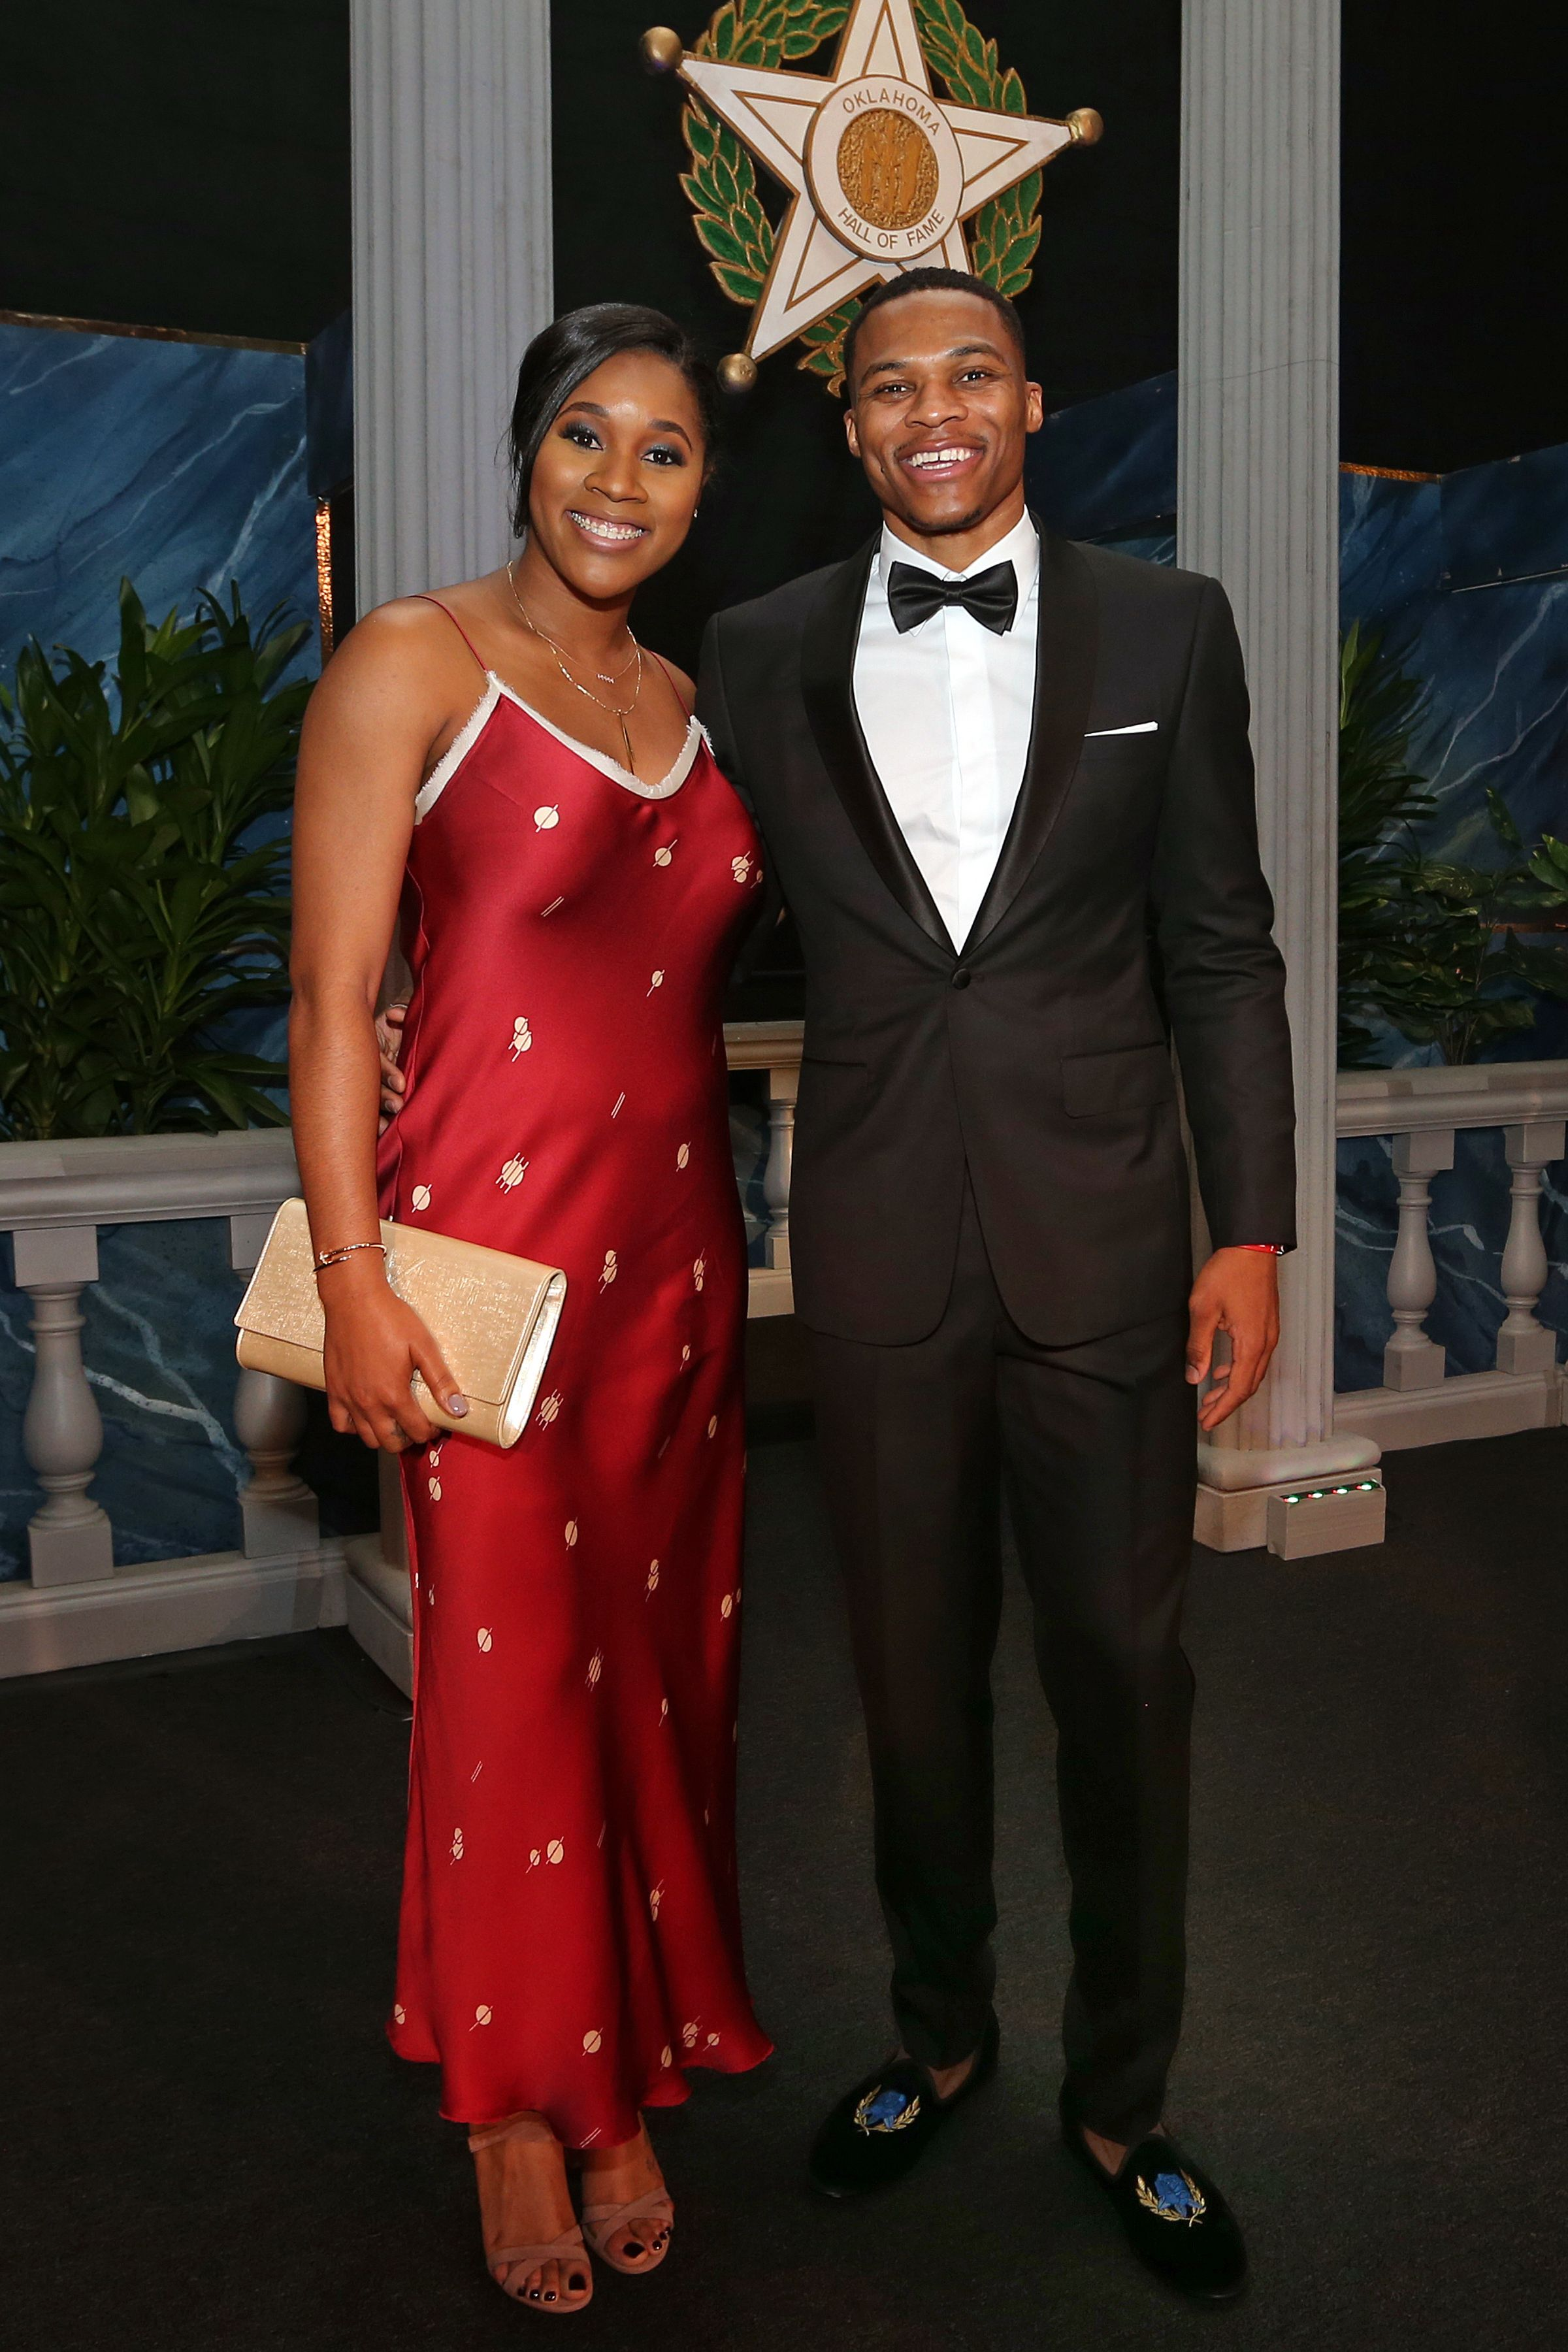 Russell Westbrook with his wife, Nina Ann-Marie Westbrook on November 17, 2016 at the Cox Convention Center in Oklahoma City, Oklahoma. | Source: Getty Images